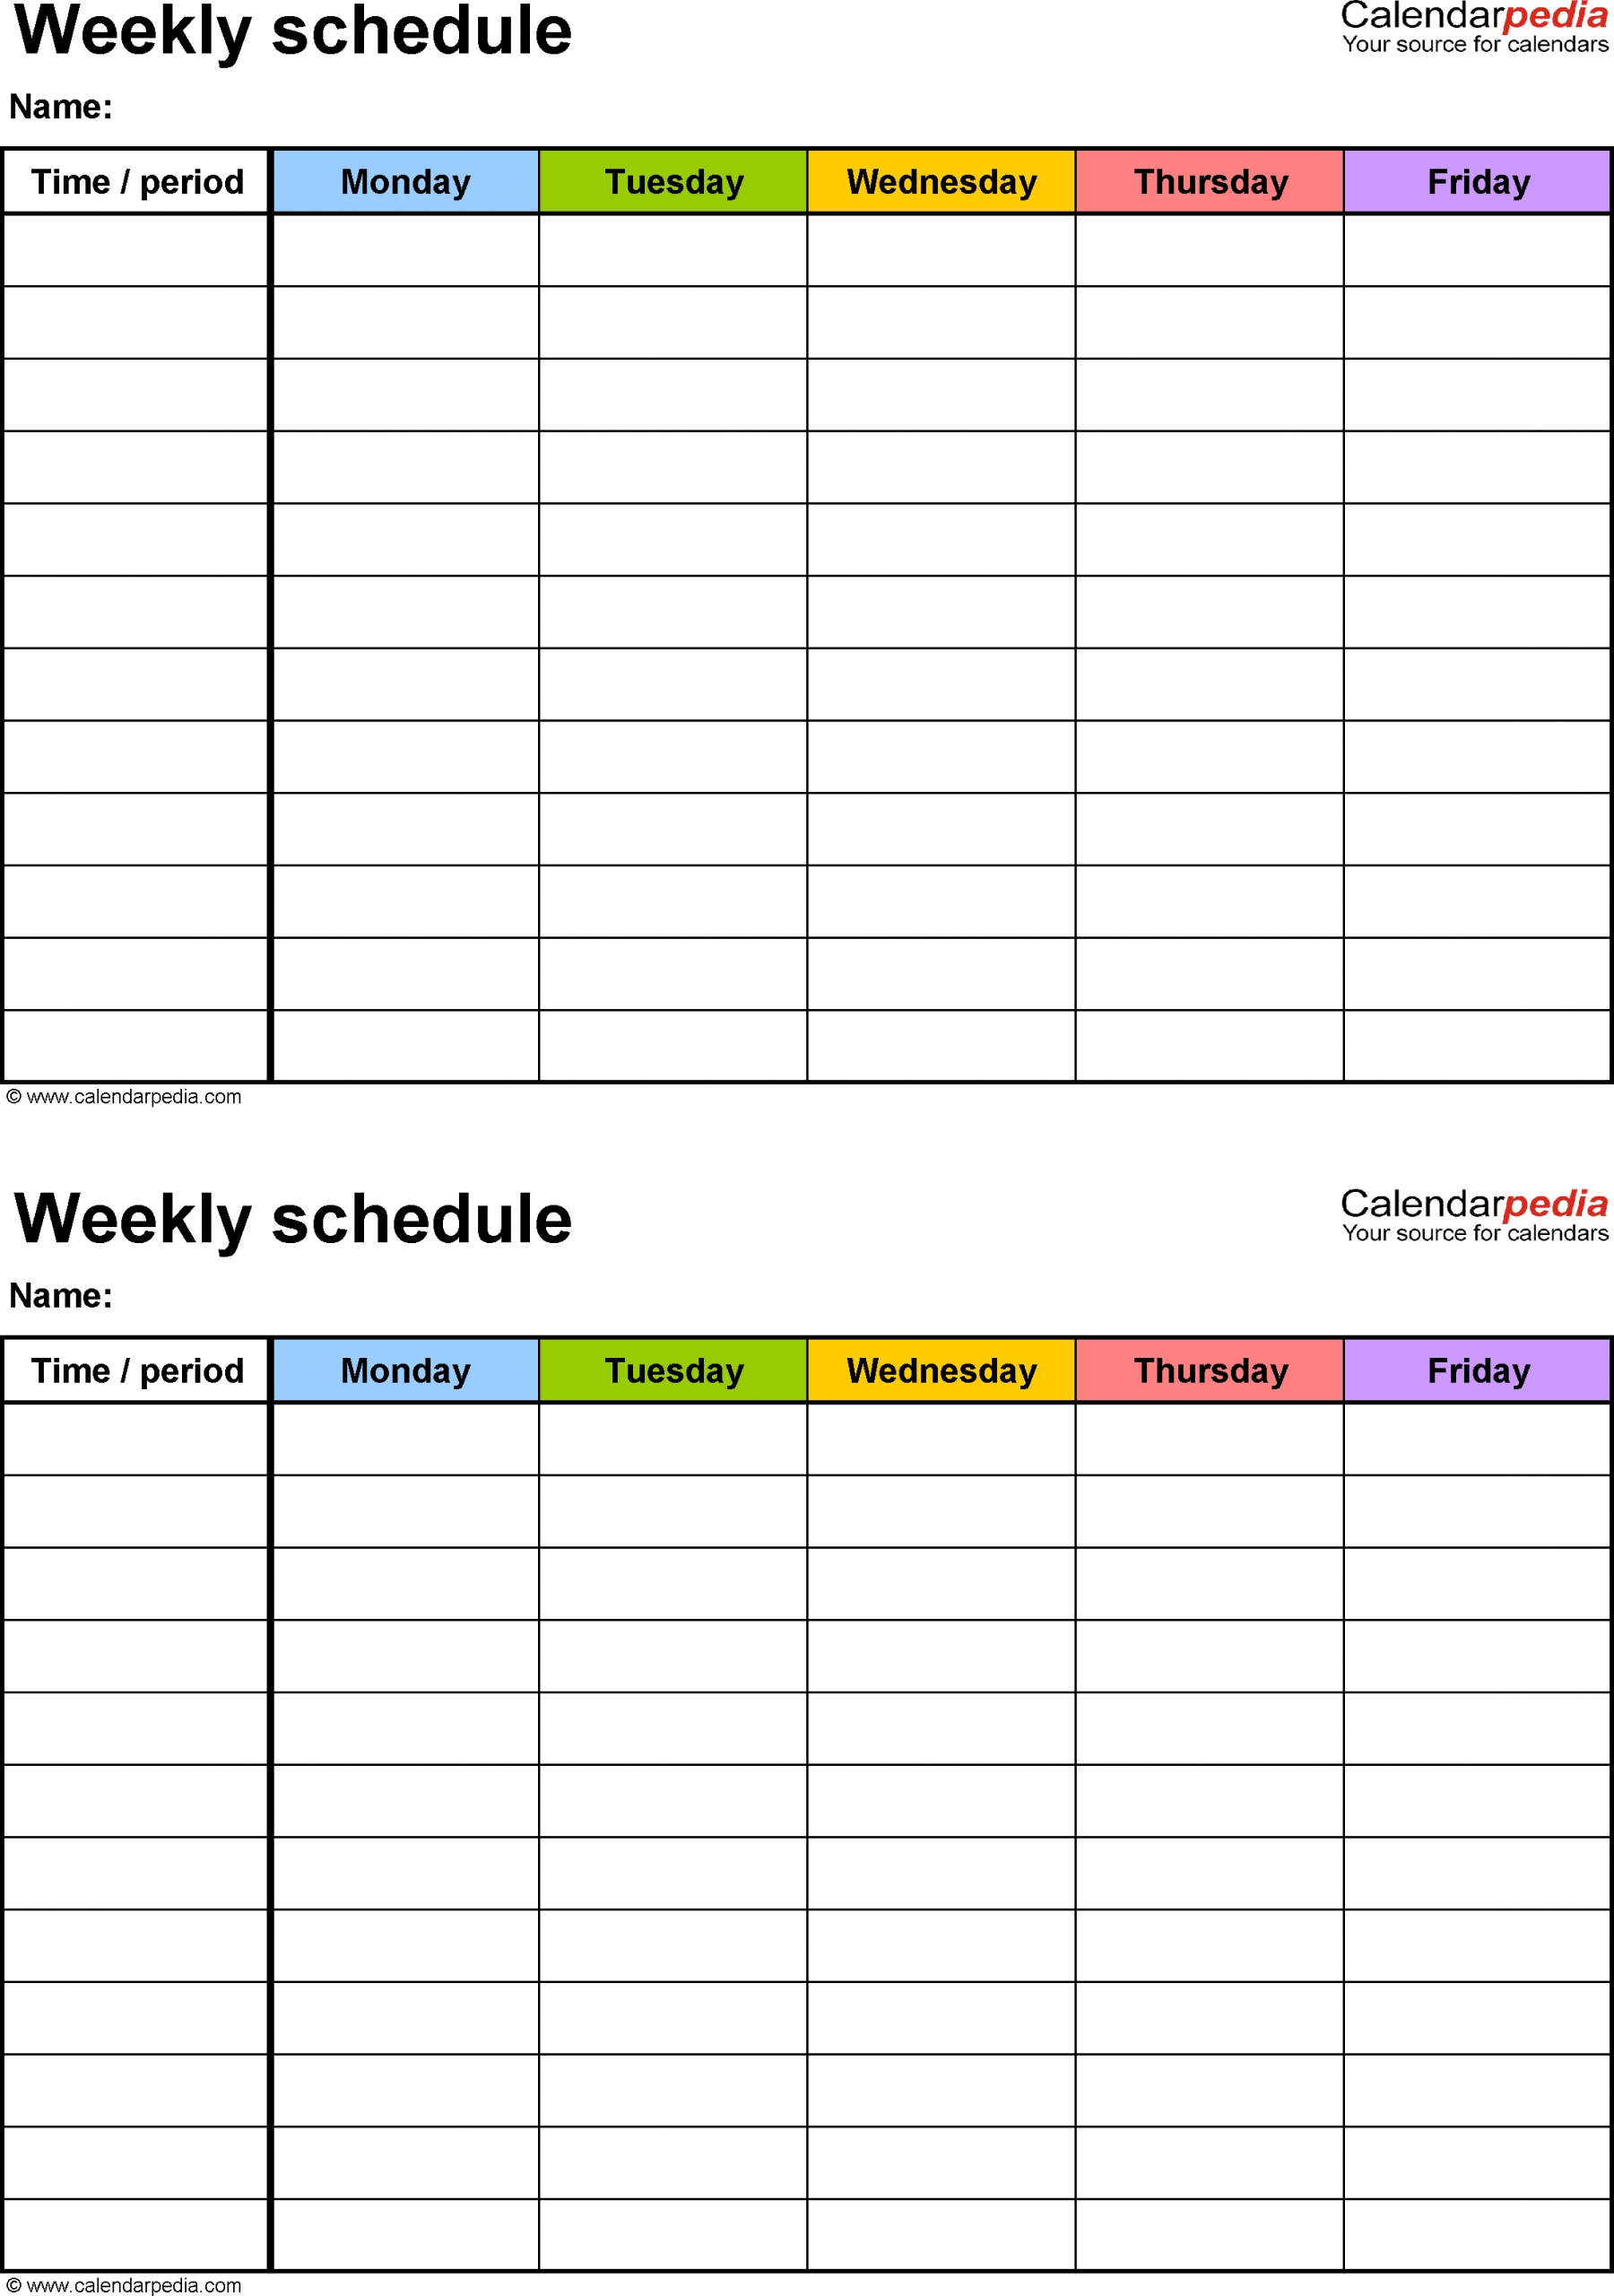 Free Weekly Schedule Templates For Pdf - 18 Templates with regard to Daily Schedule Printable Template Classroom